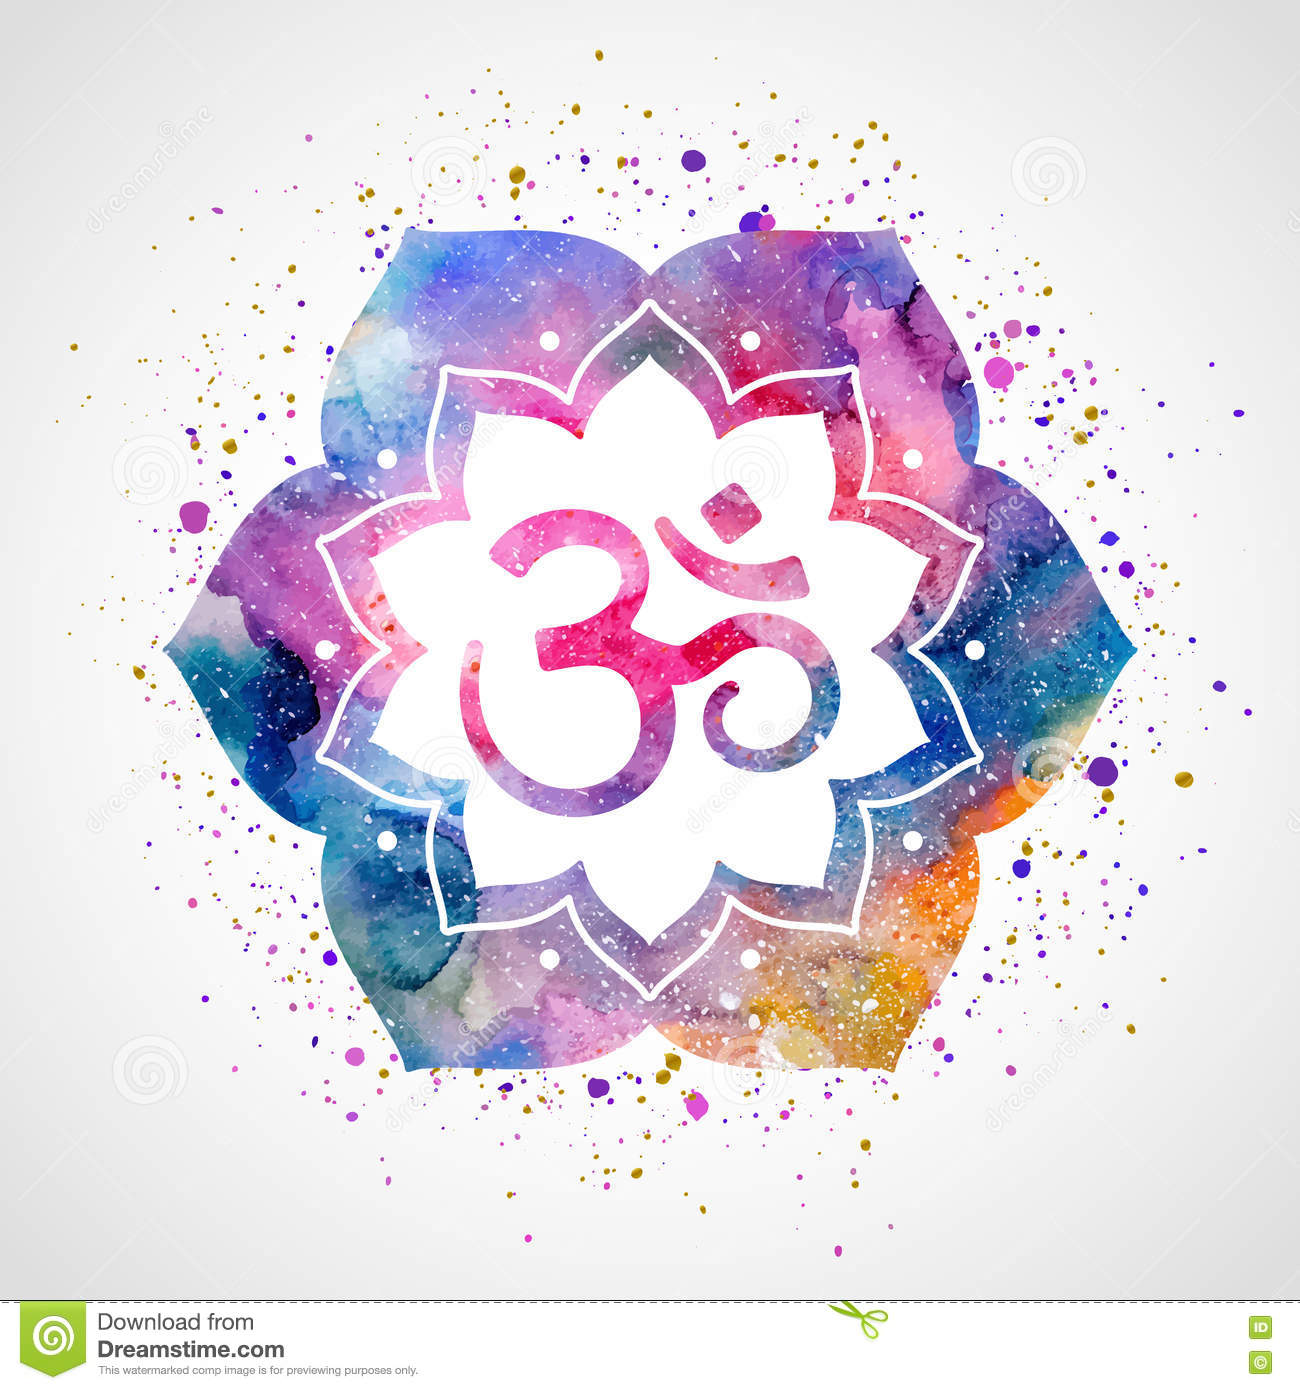 Om sign in lotus flower stock vector image 66869502 om sign in lotus flower royalty free stock photo dhlflorist Choice Image